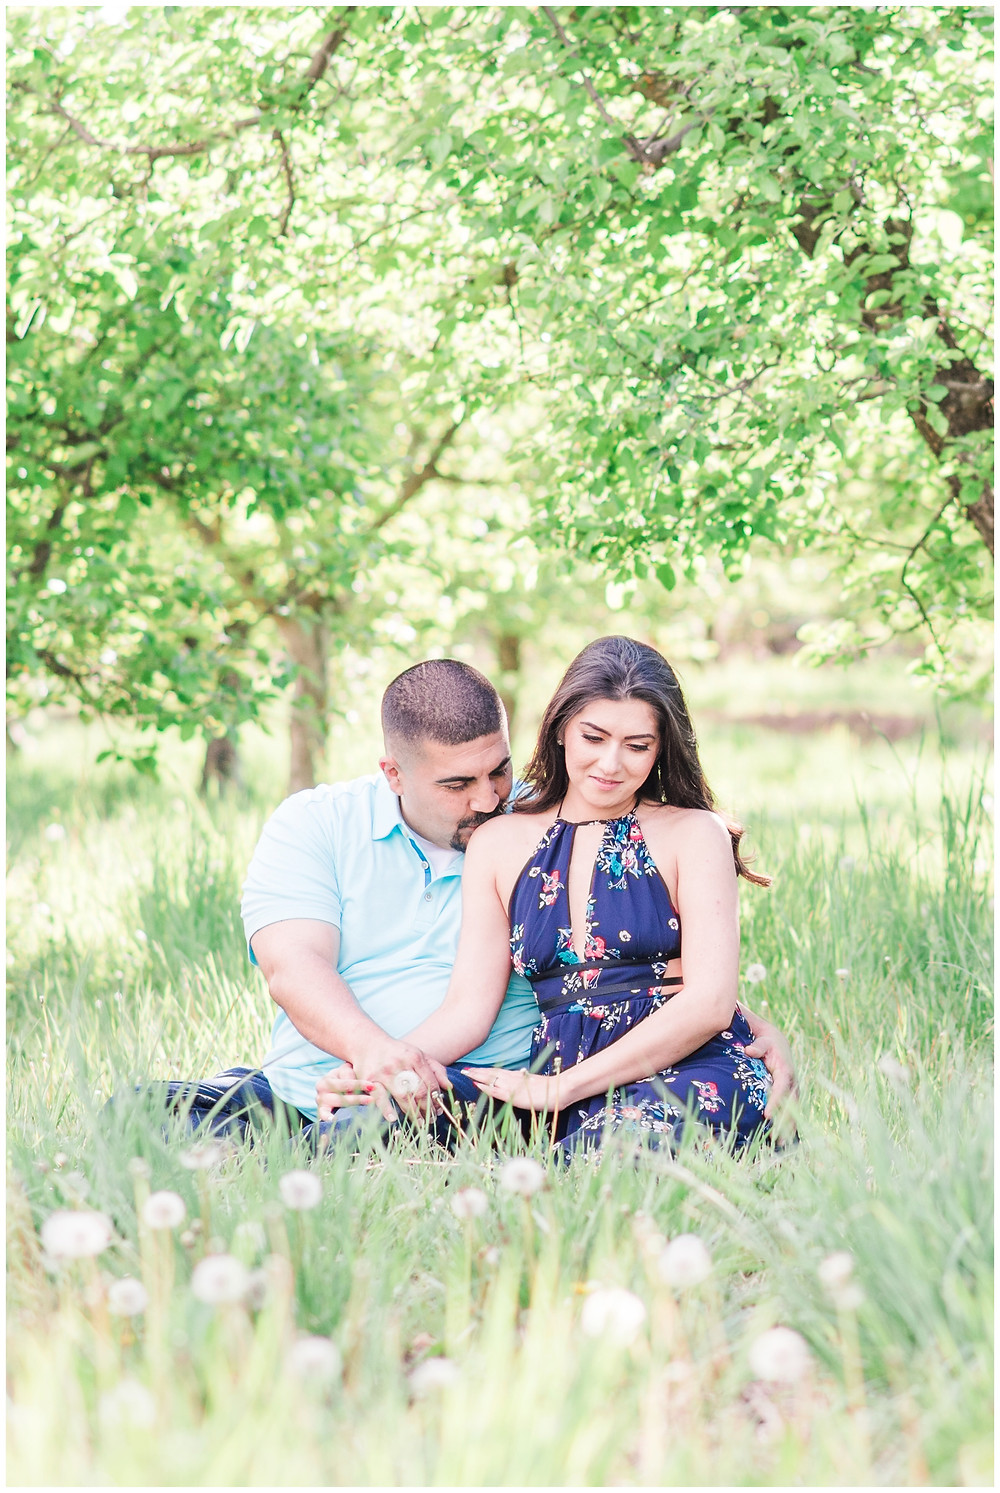 Flower tree engagement in corrales, new Mexico. Albuquerque wedding photographer Maura Jane Photography. Couple in blue outfits sitting in grass field